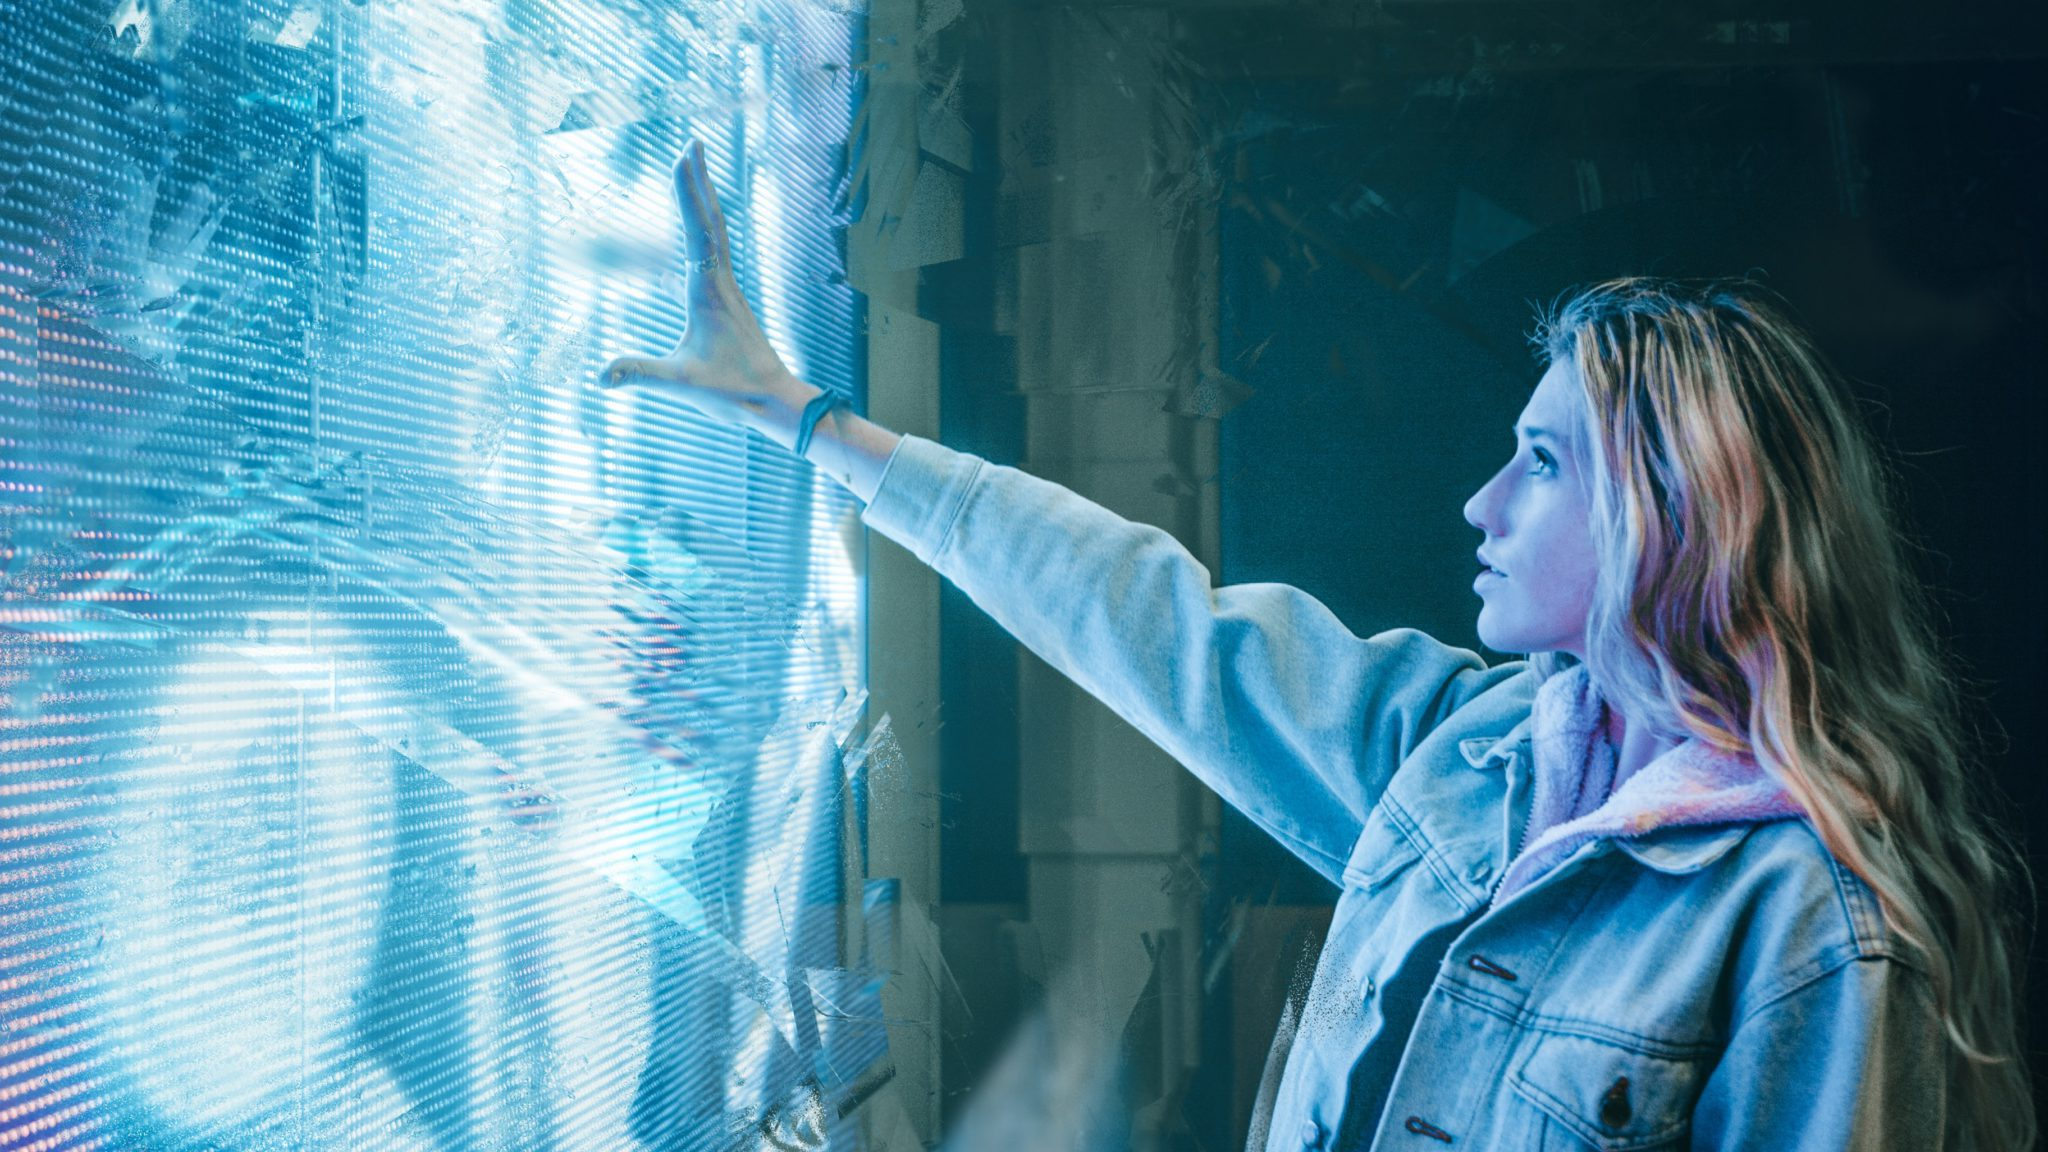 Tech Trends Right Out of Science Fiction